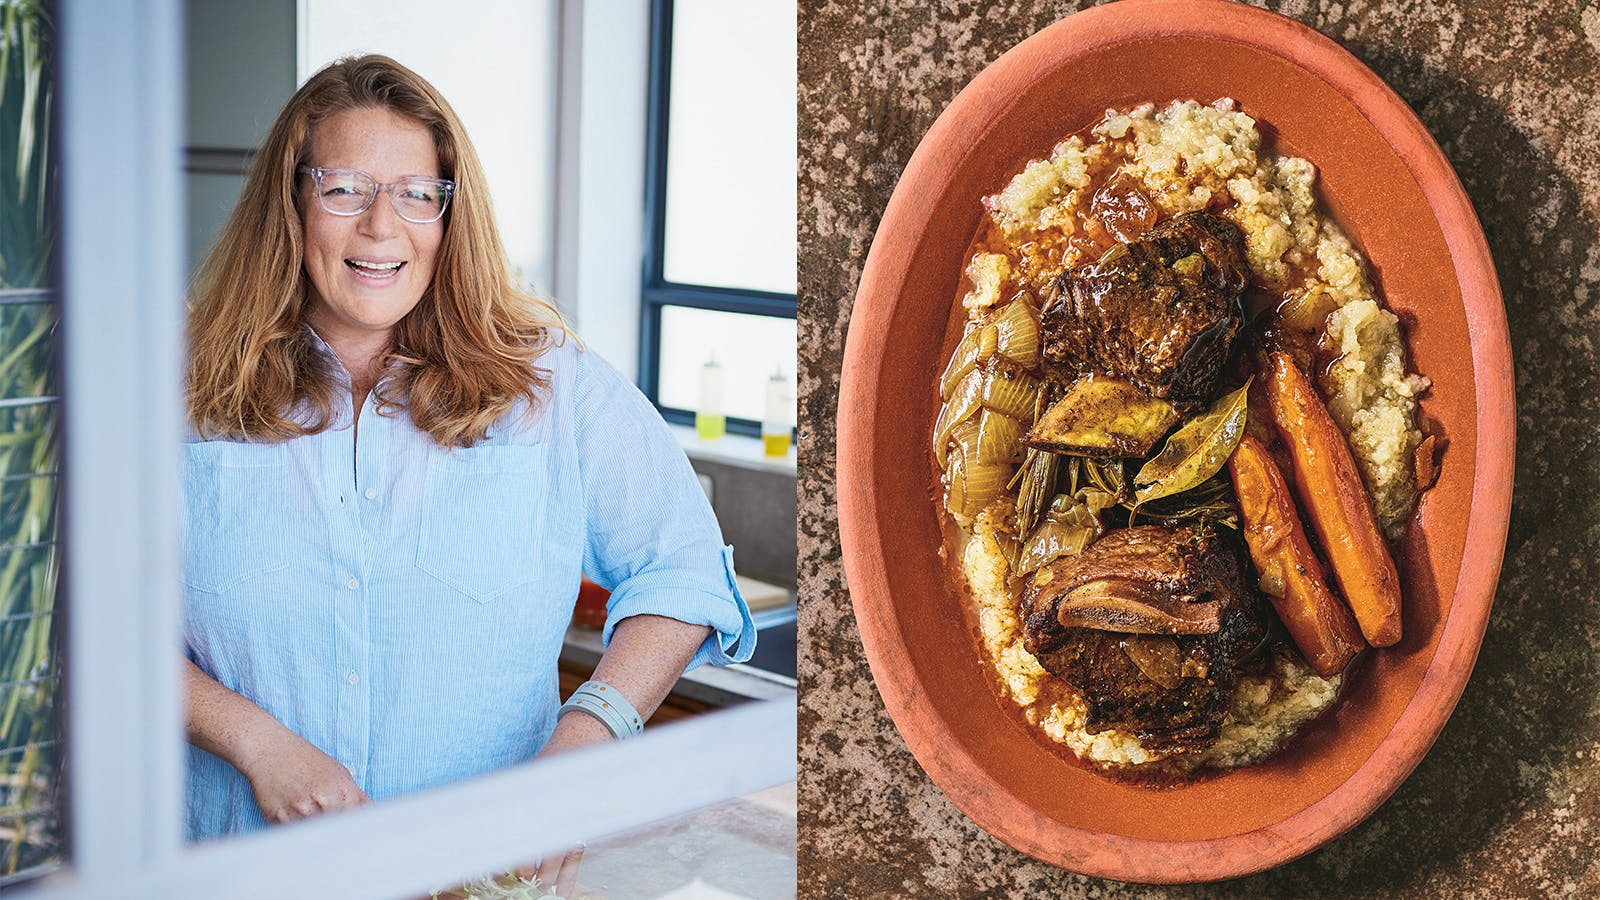 Adeena Sussman's Passover-Friendly Braised Short Ribs with Roasted Kohlrabi Mash